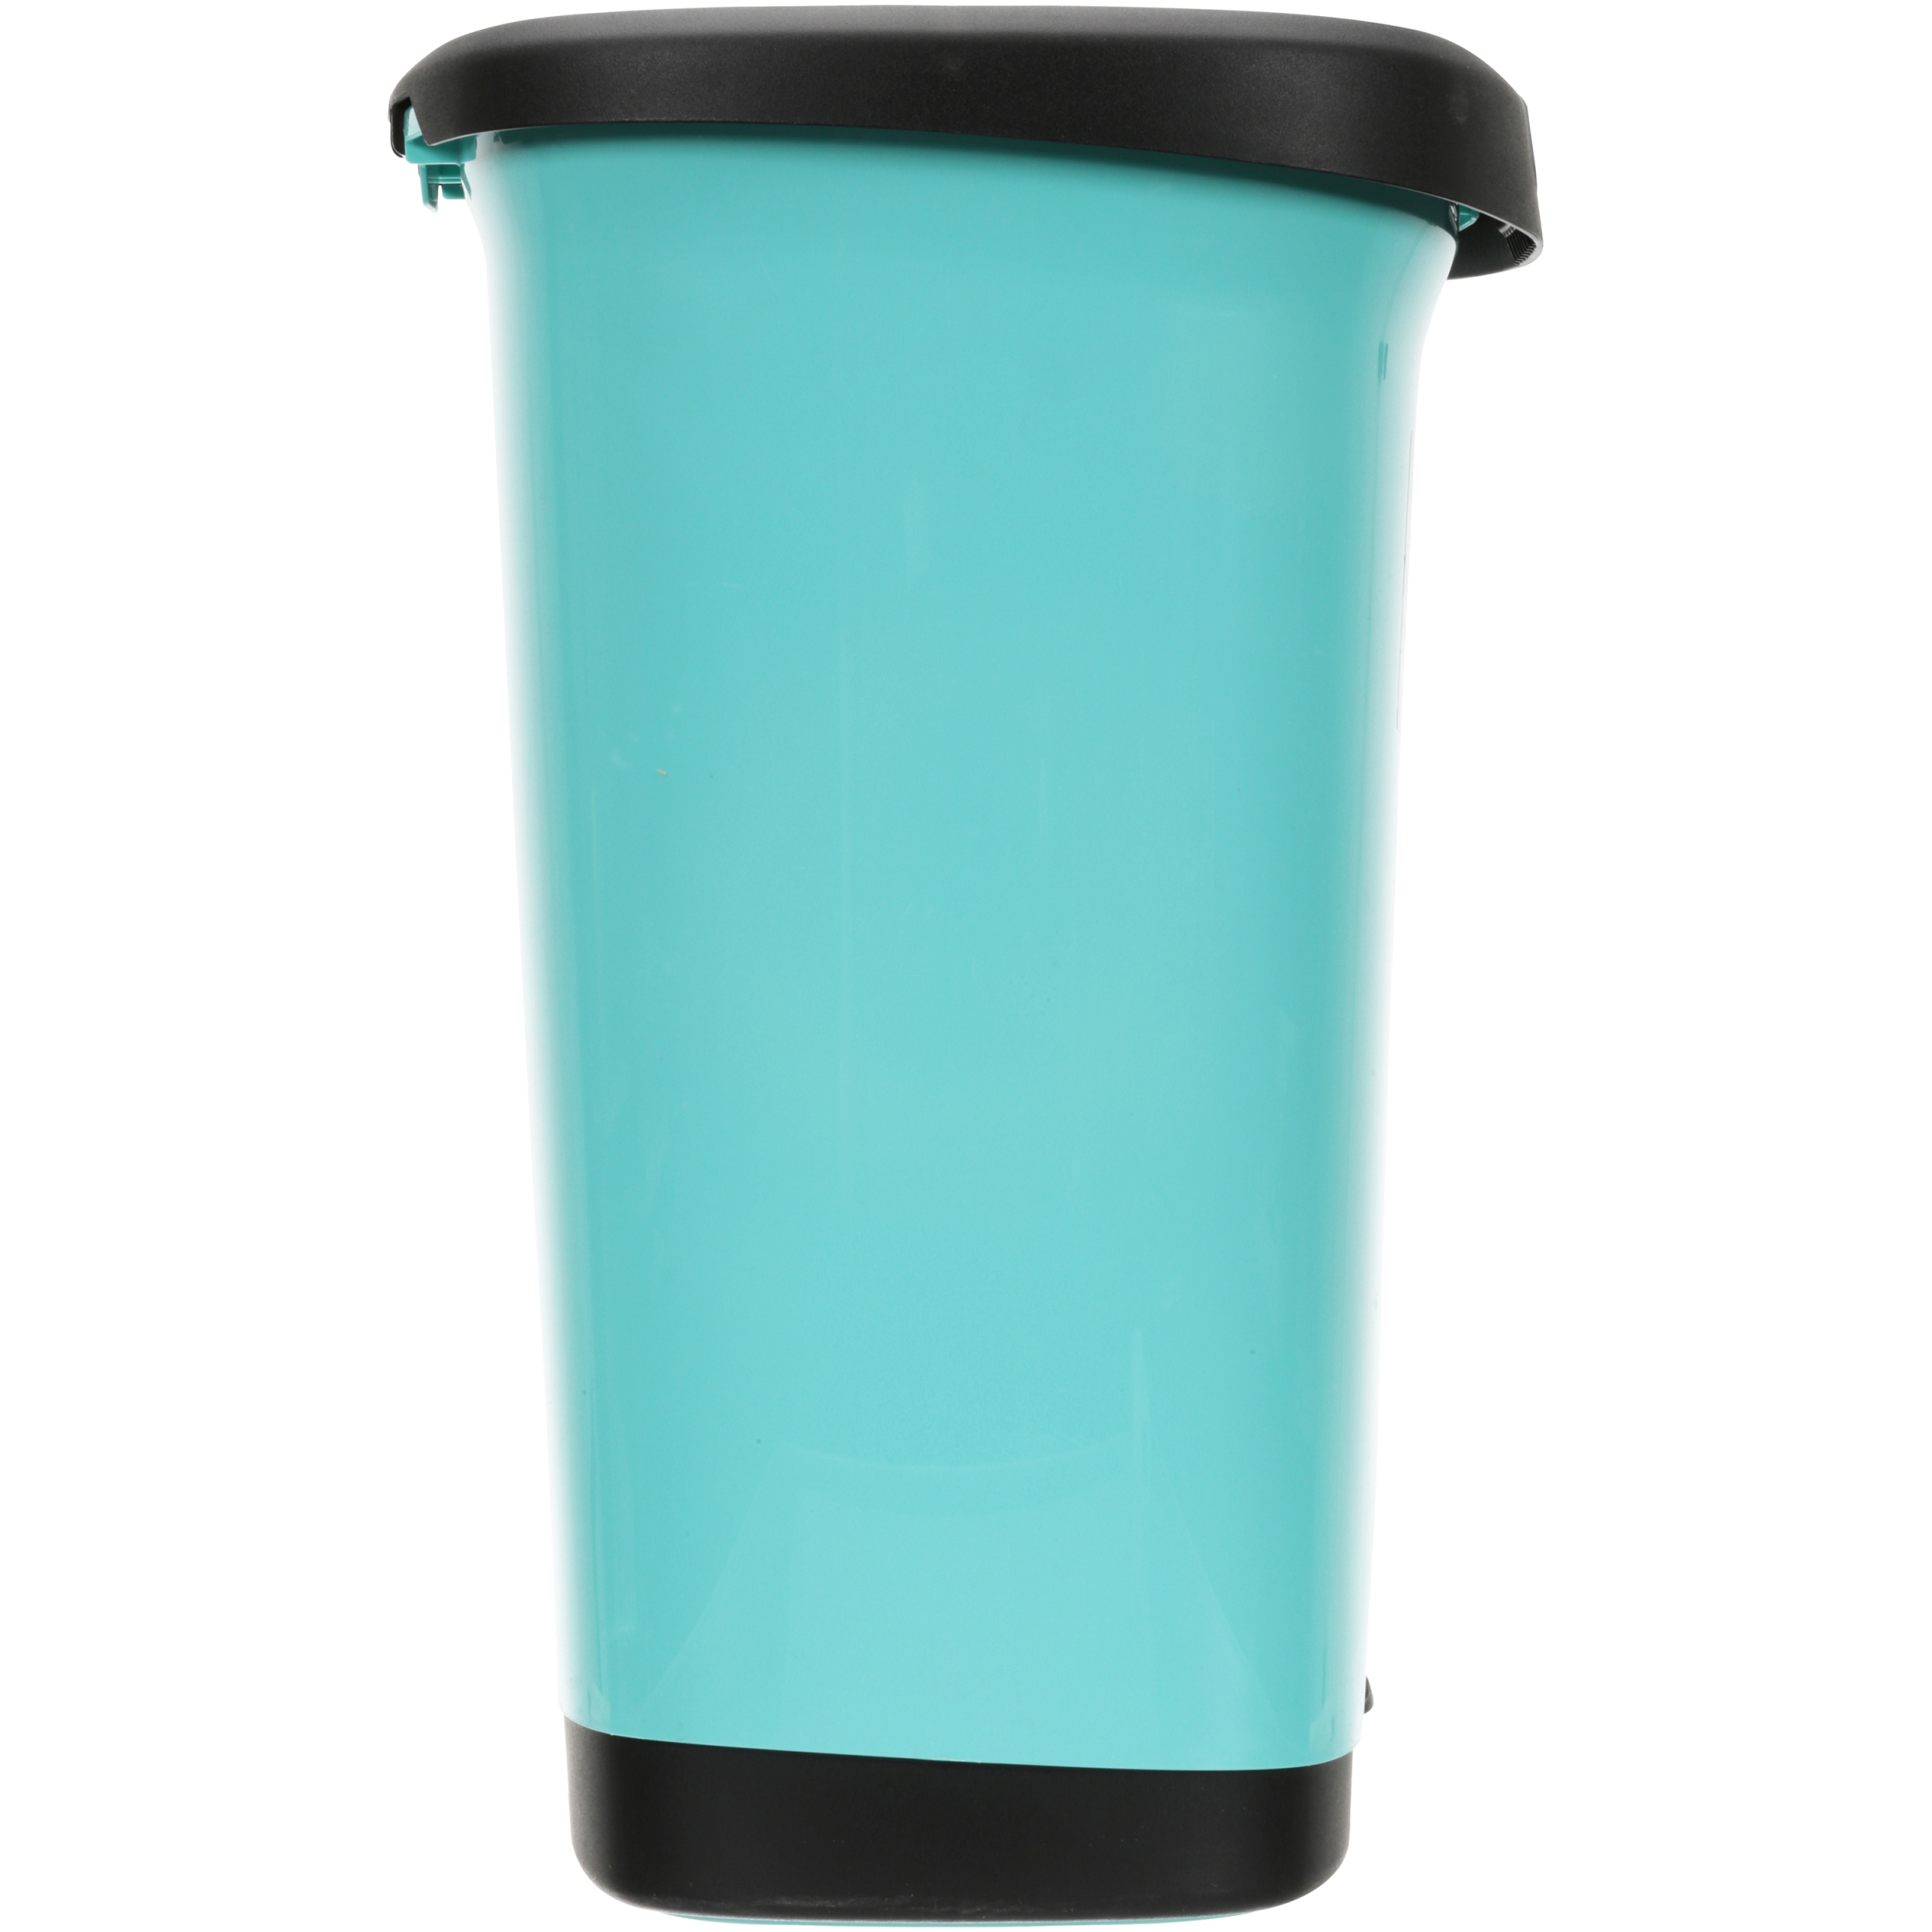 Hefty 7-Gal Textured Step-On Trash Can with Lid Lock and Bottom Cap ...